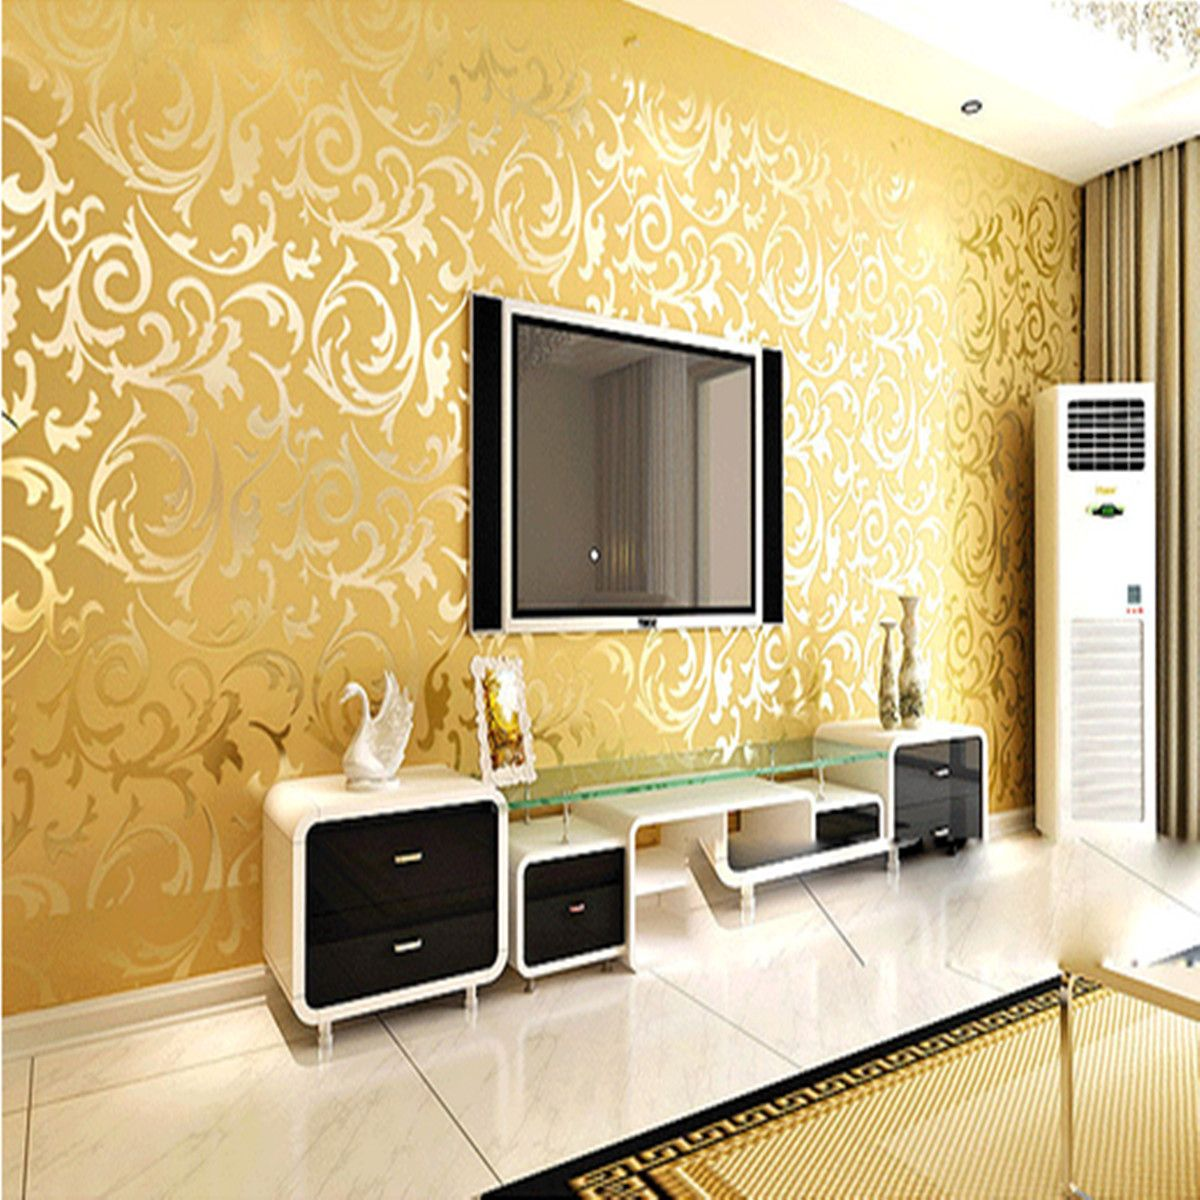 10mx53cm Wallpaper Rolls Silver Golden Apricot Luxury Embo